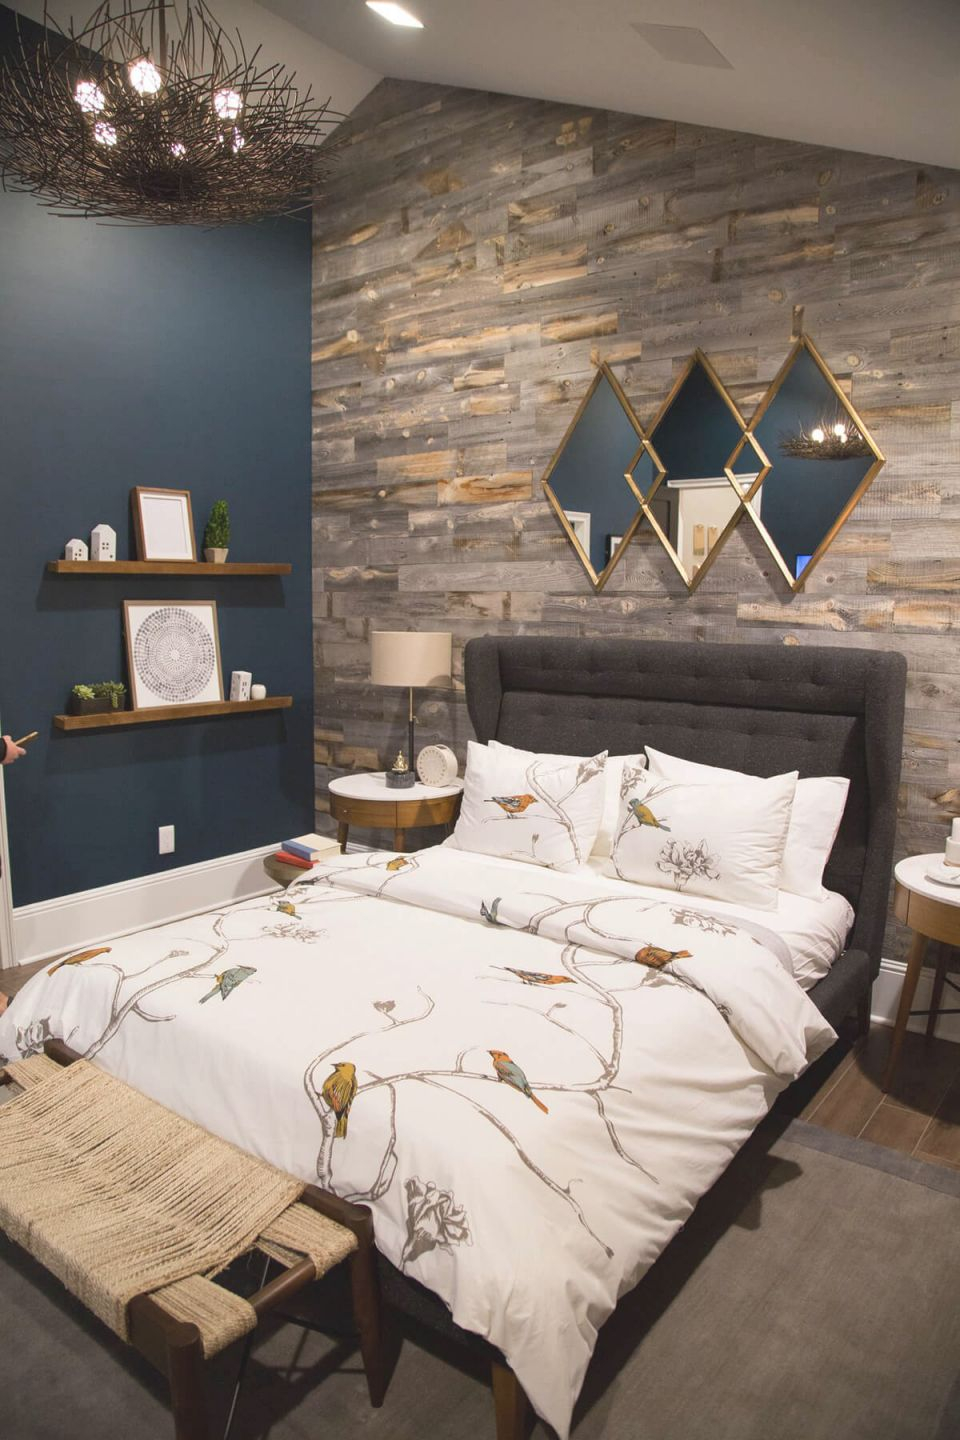 25+ Best Bedroom Wall Decor Ideas And Designs For 2020 inside Beautiful Decorative Ideas For Bedroom